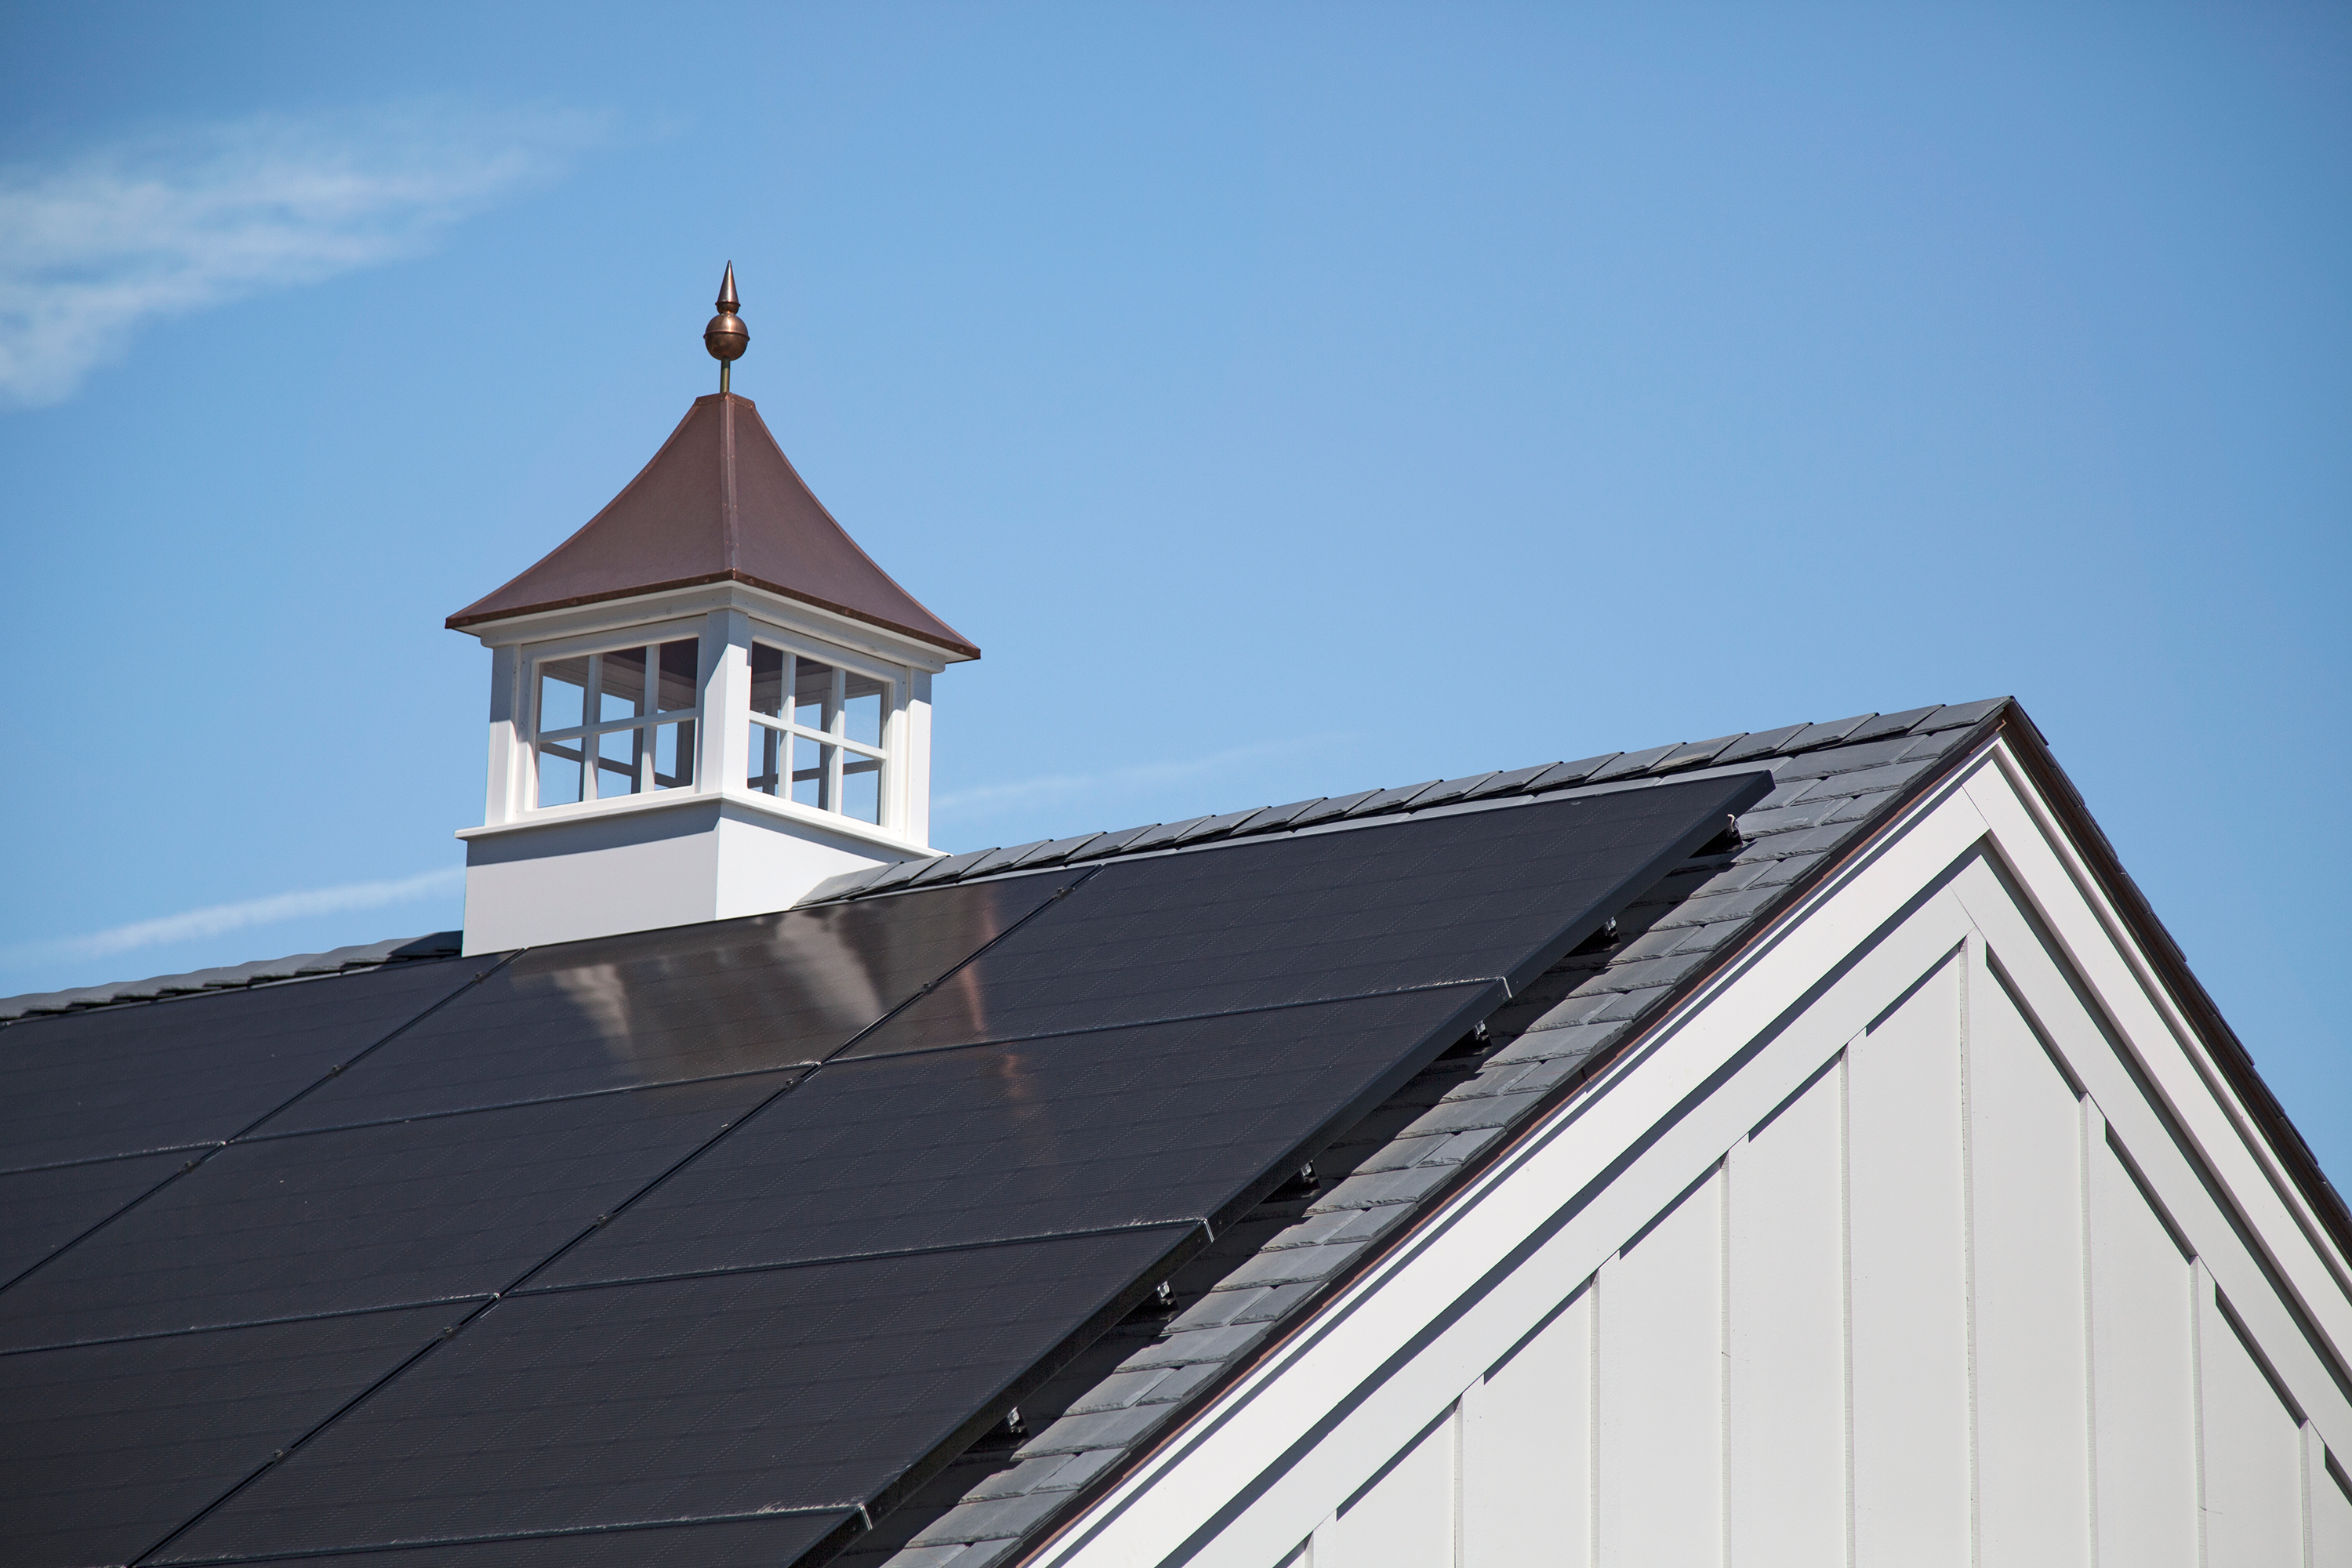 Solar panels on home roof.